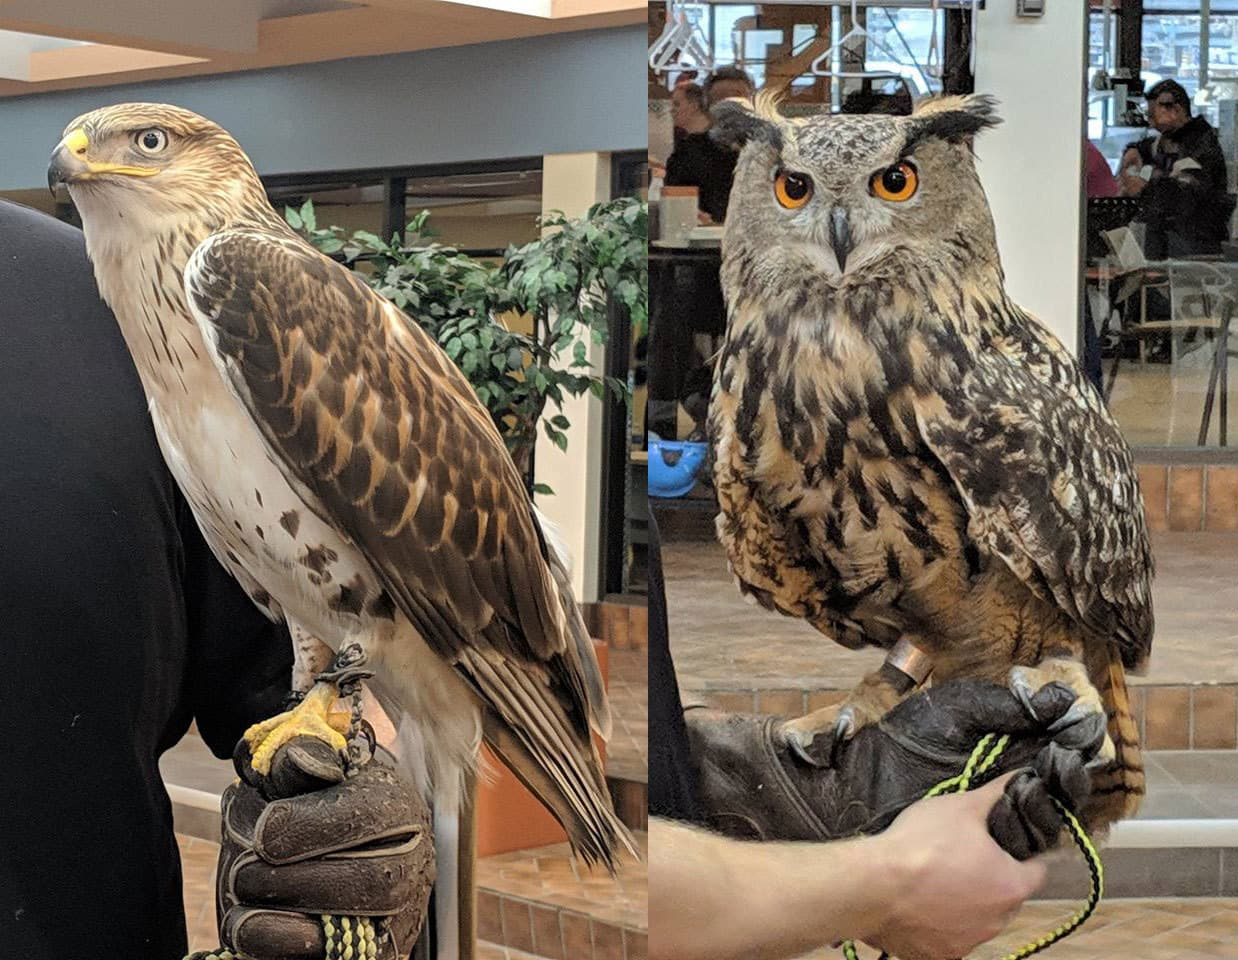 Clementine the owl and Freddy the hawk